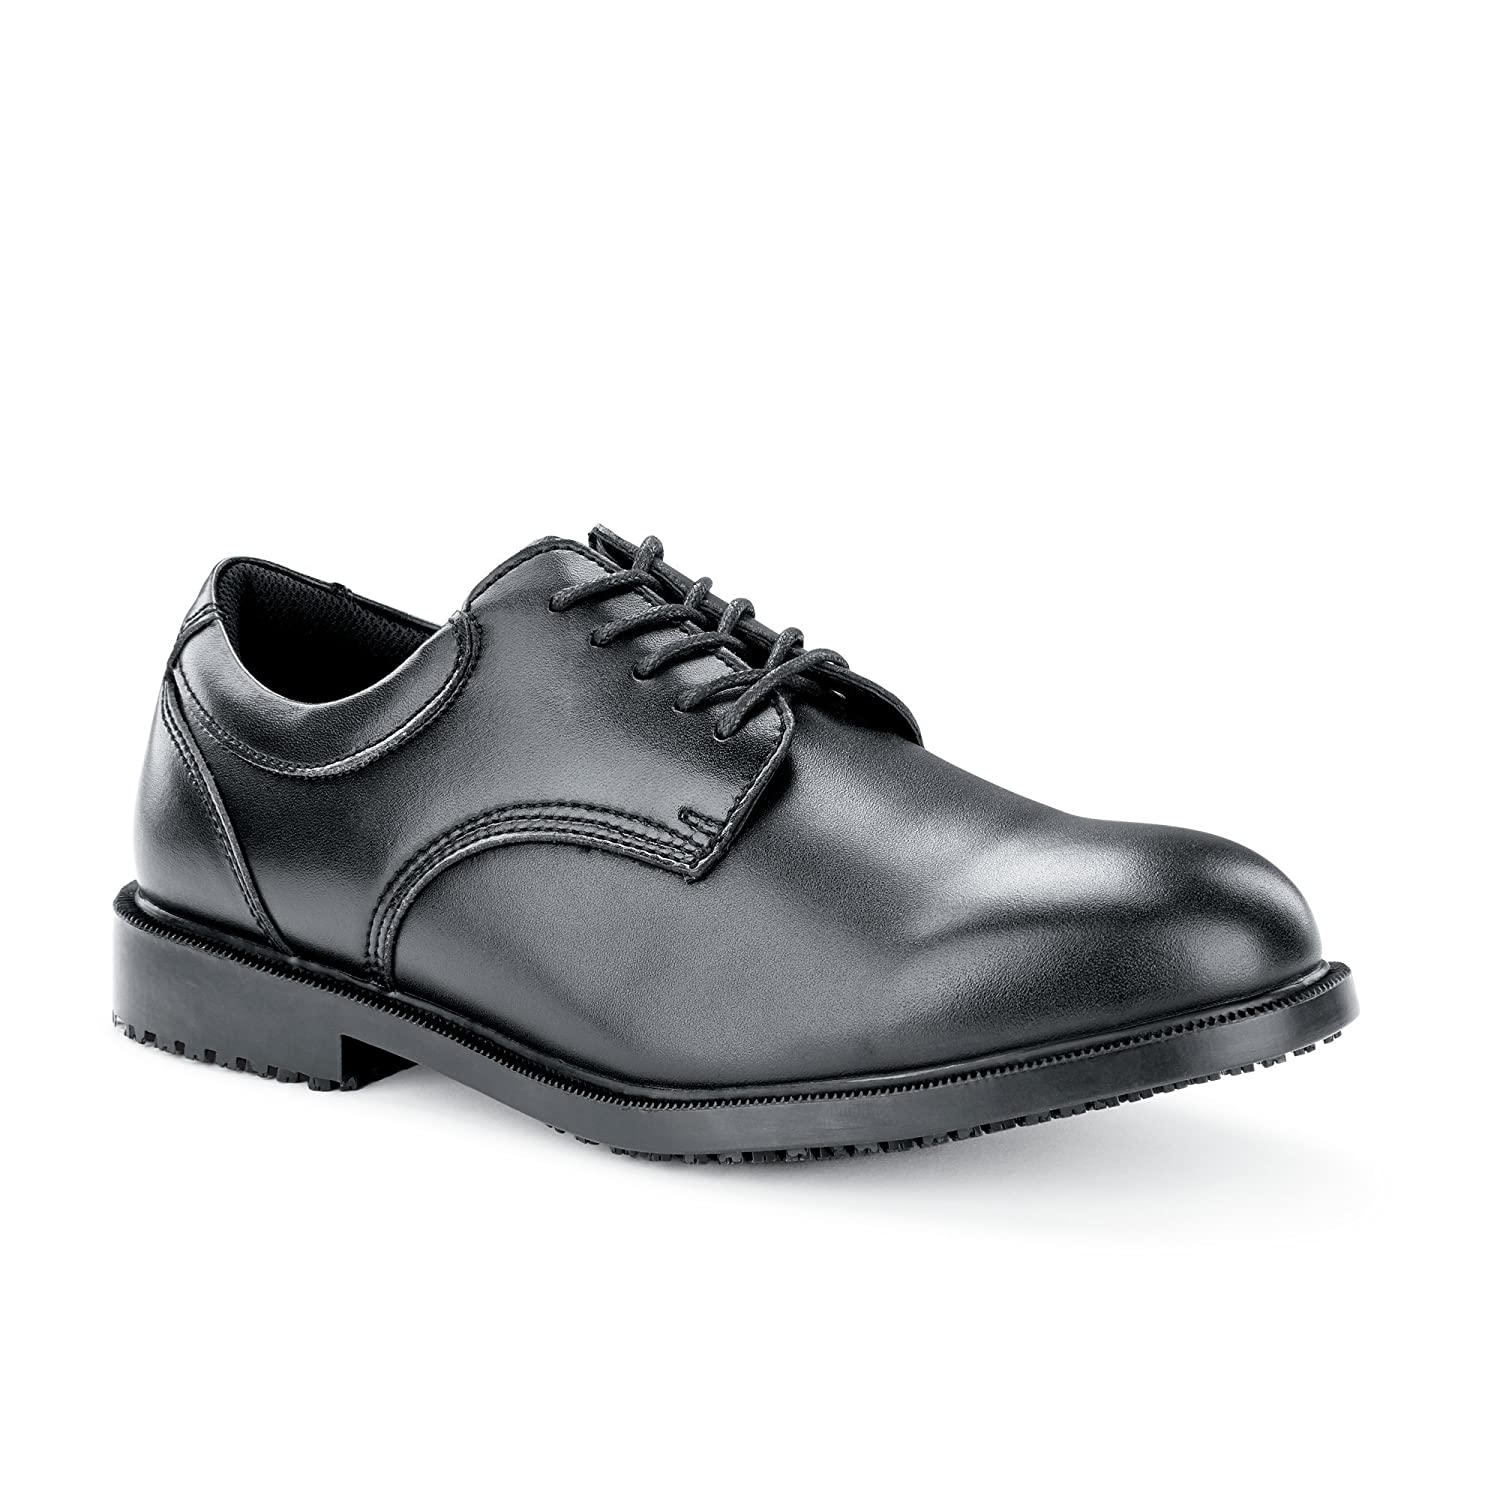 TALLA 43 EU (9 UK). Shoes For Crews Cambridge - Ce Cert - Calzado de protección Hombre